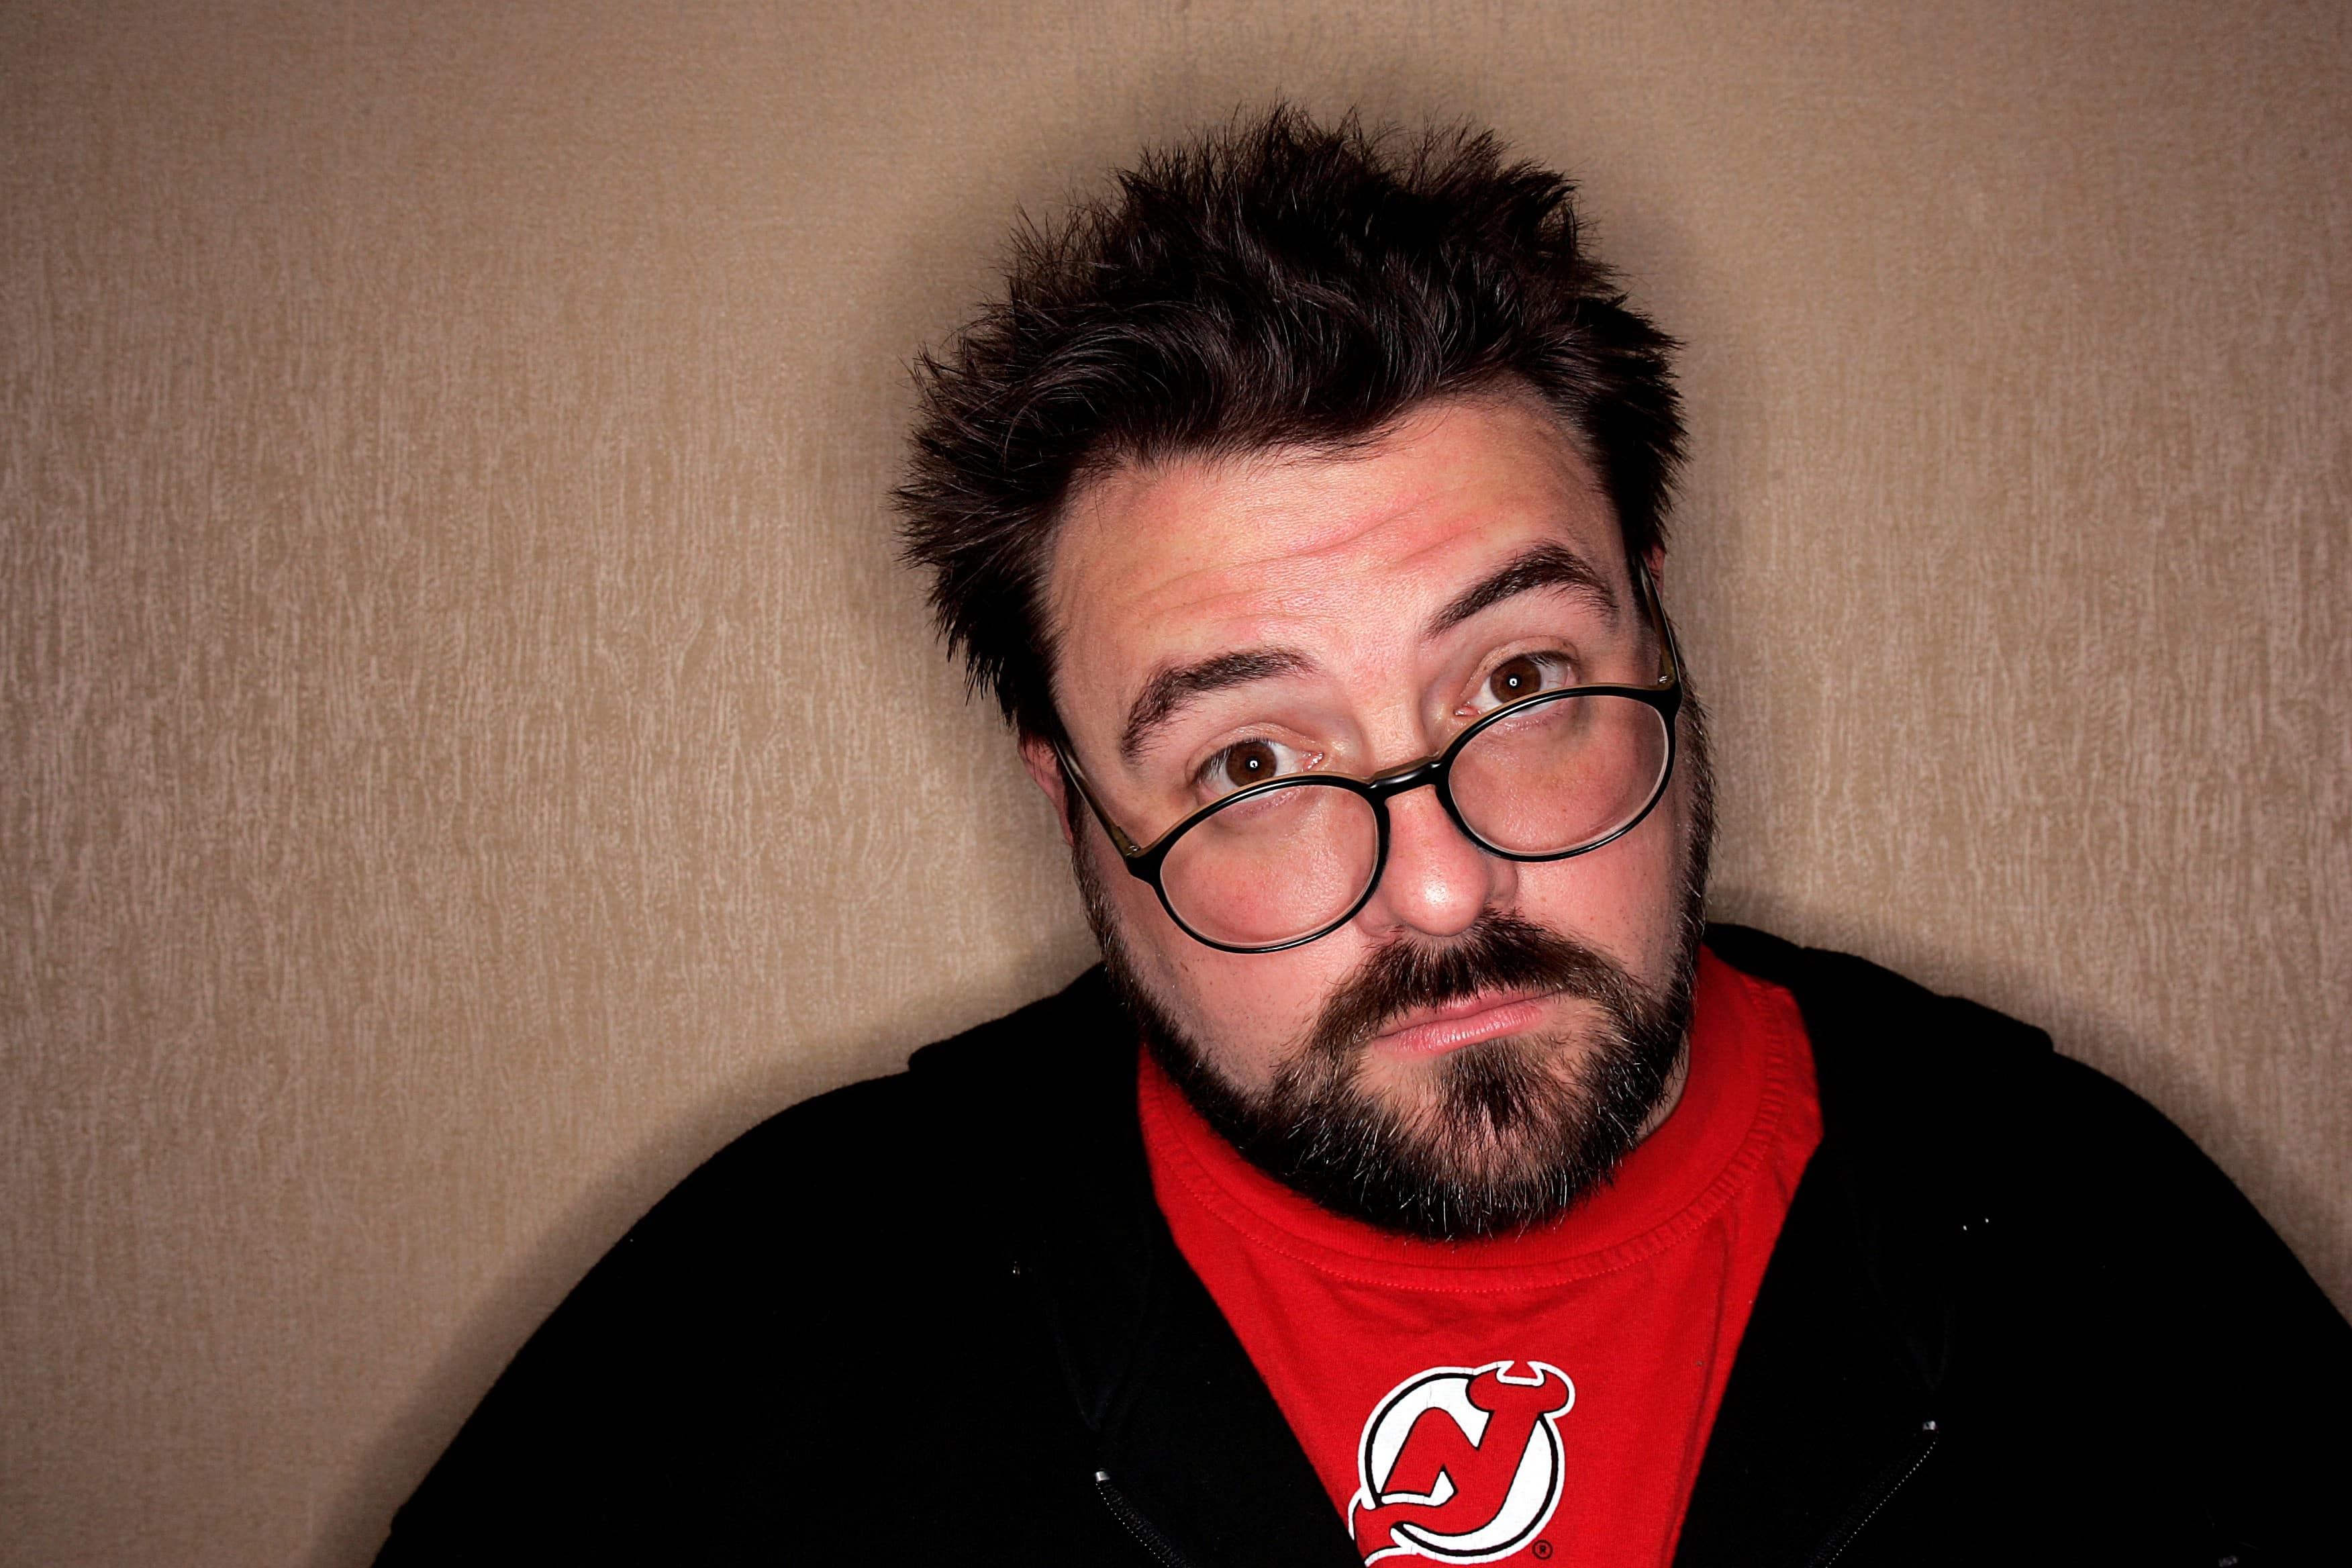 Kevin Smith Net Worth, Bio 2017 - Richest Celebrities Wiki